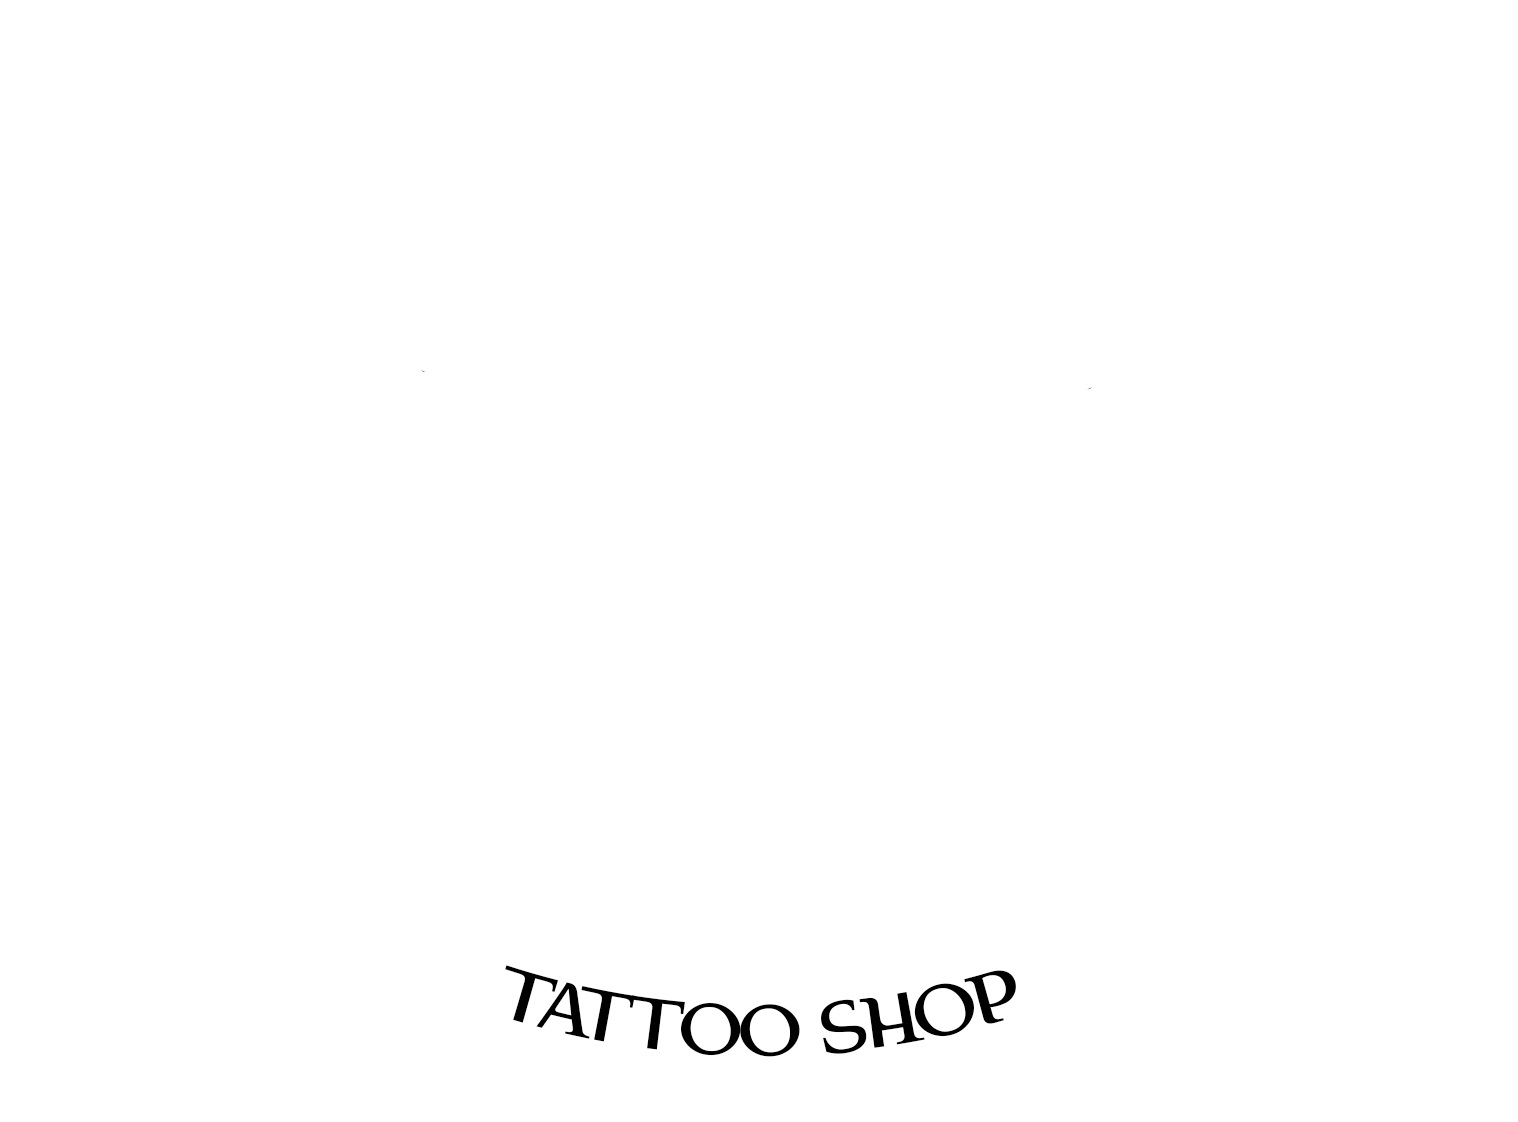 GrindHouse Tattoos | York PA Tattoo Shop